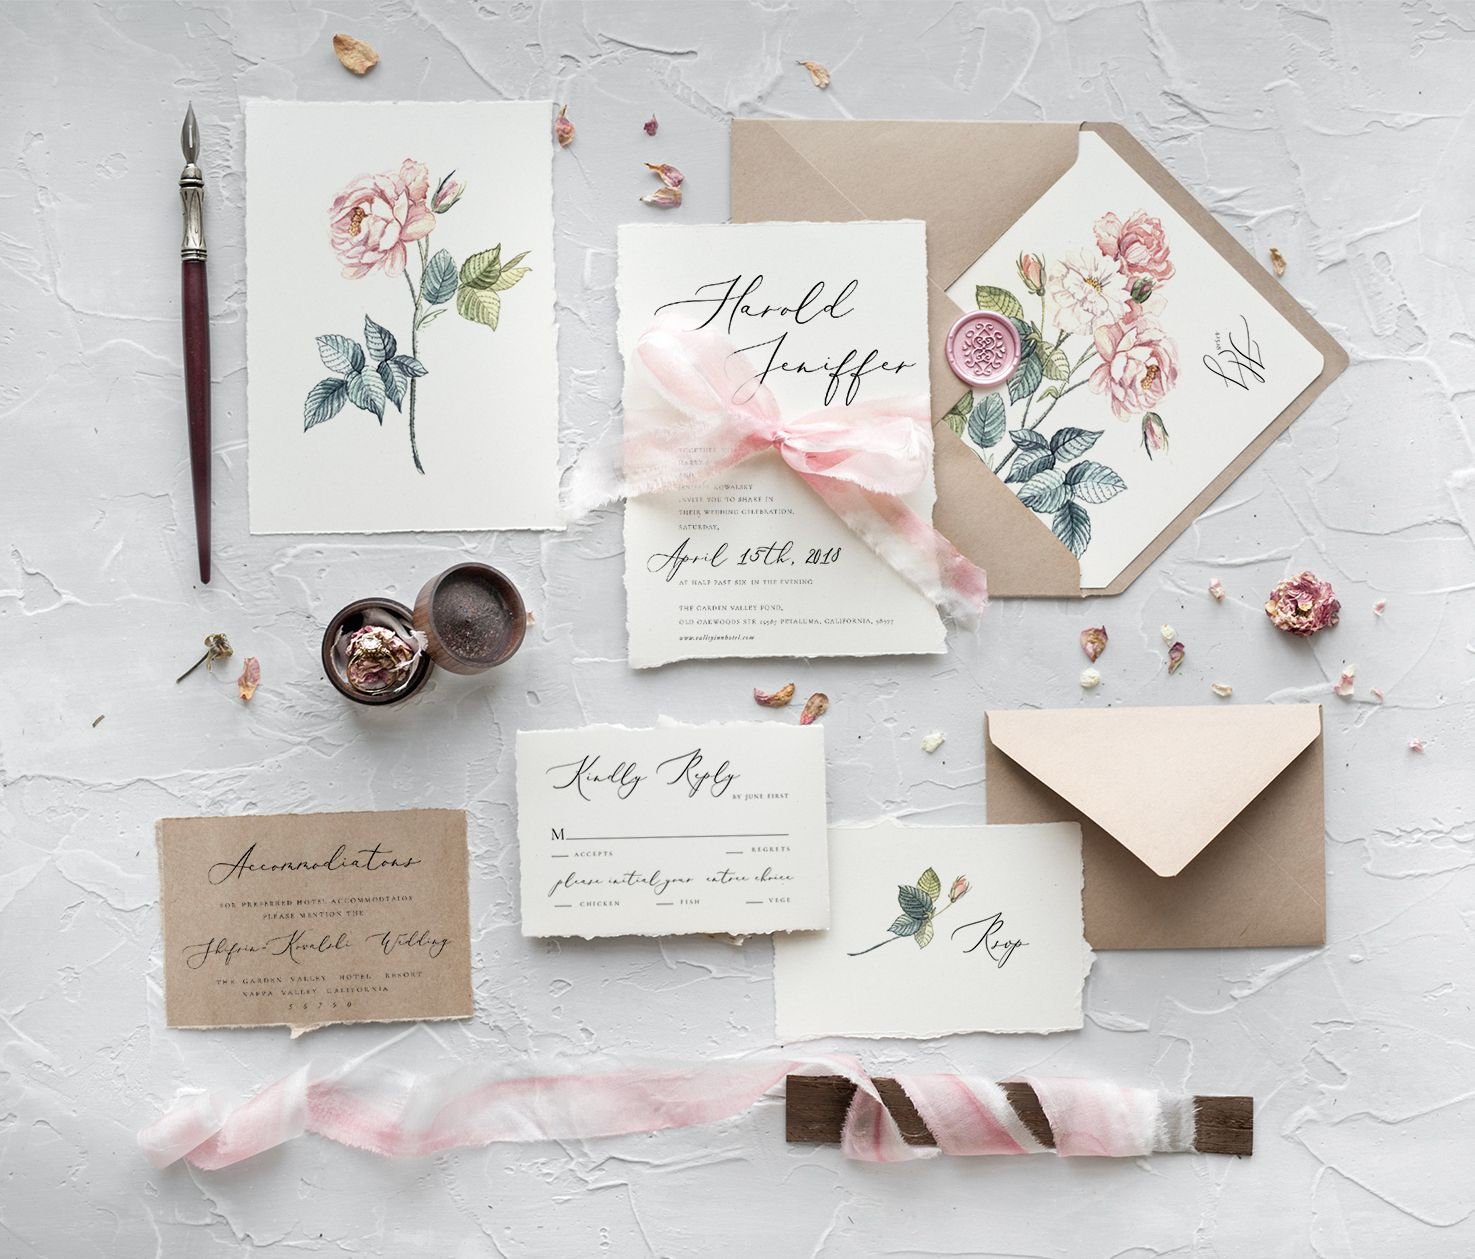 WEDDING INVITATIONS calligraphy | Weddings, Wedding and Wedding ...